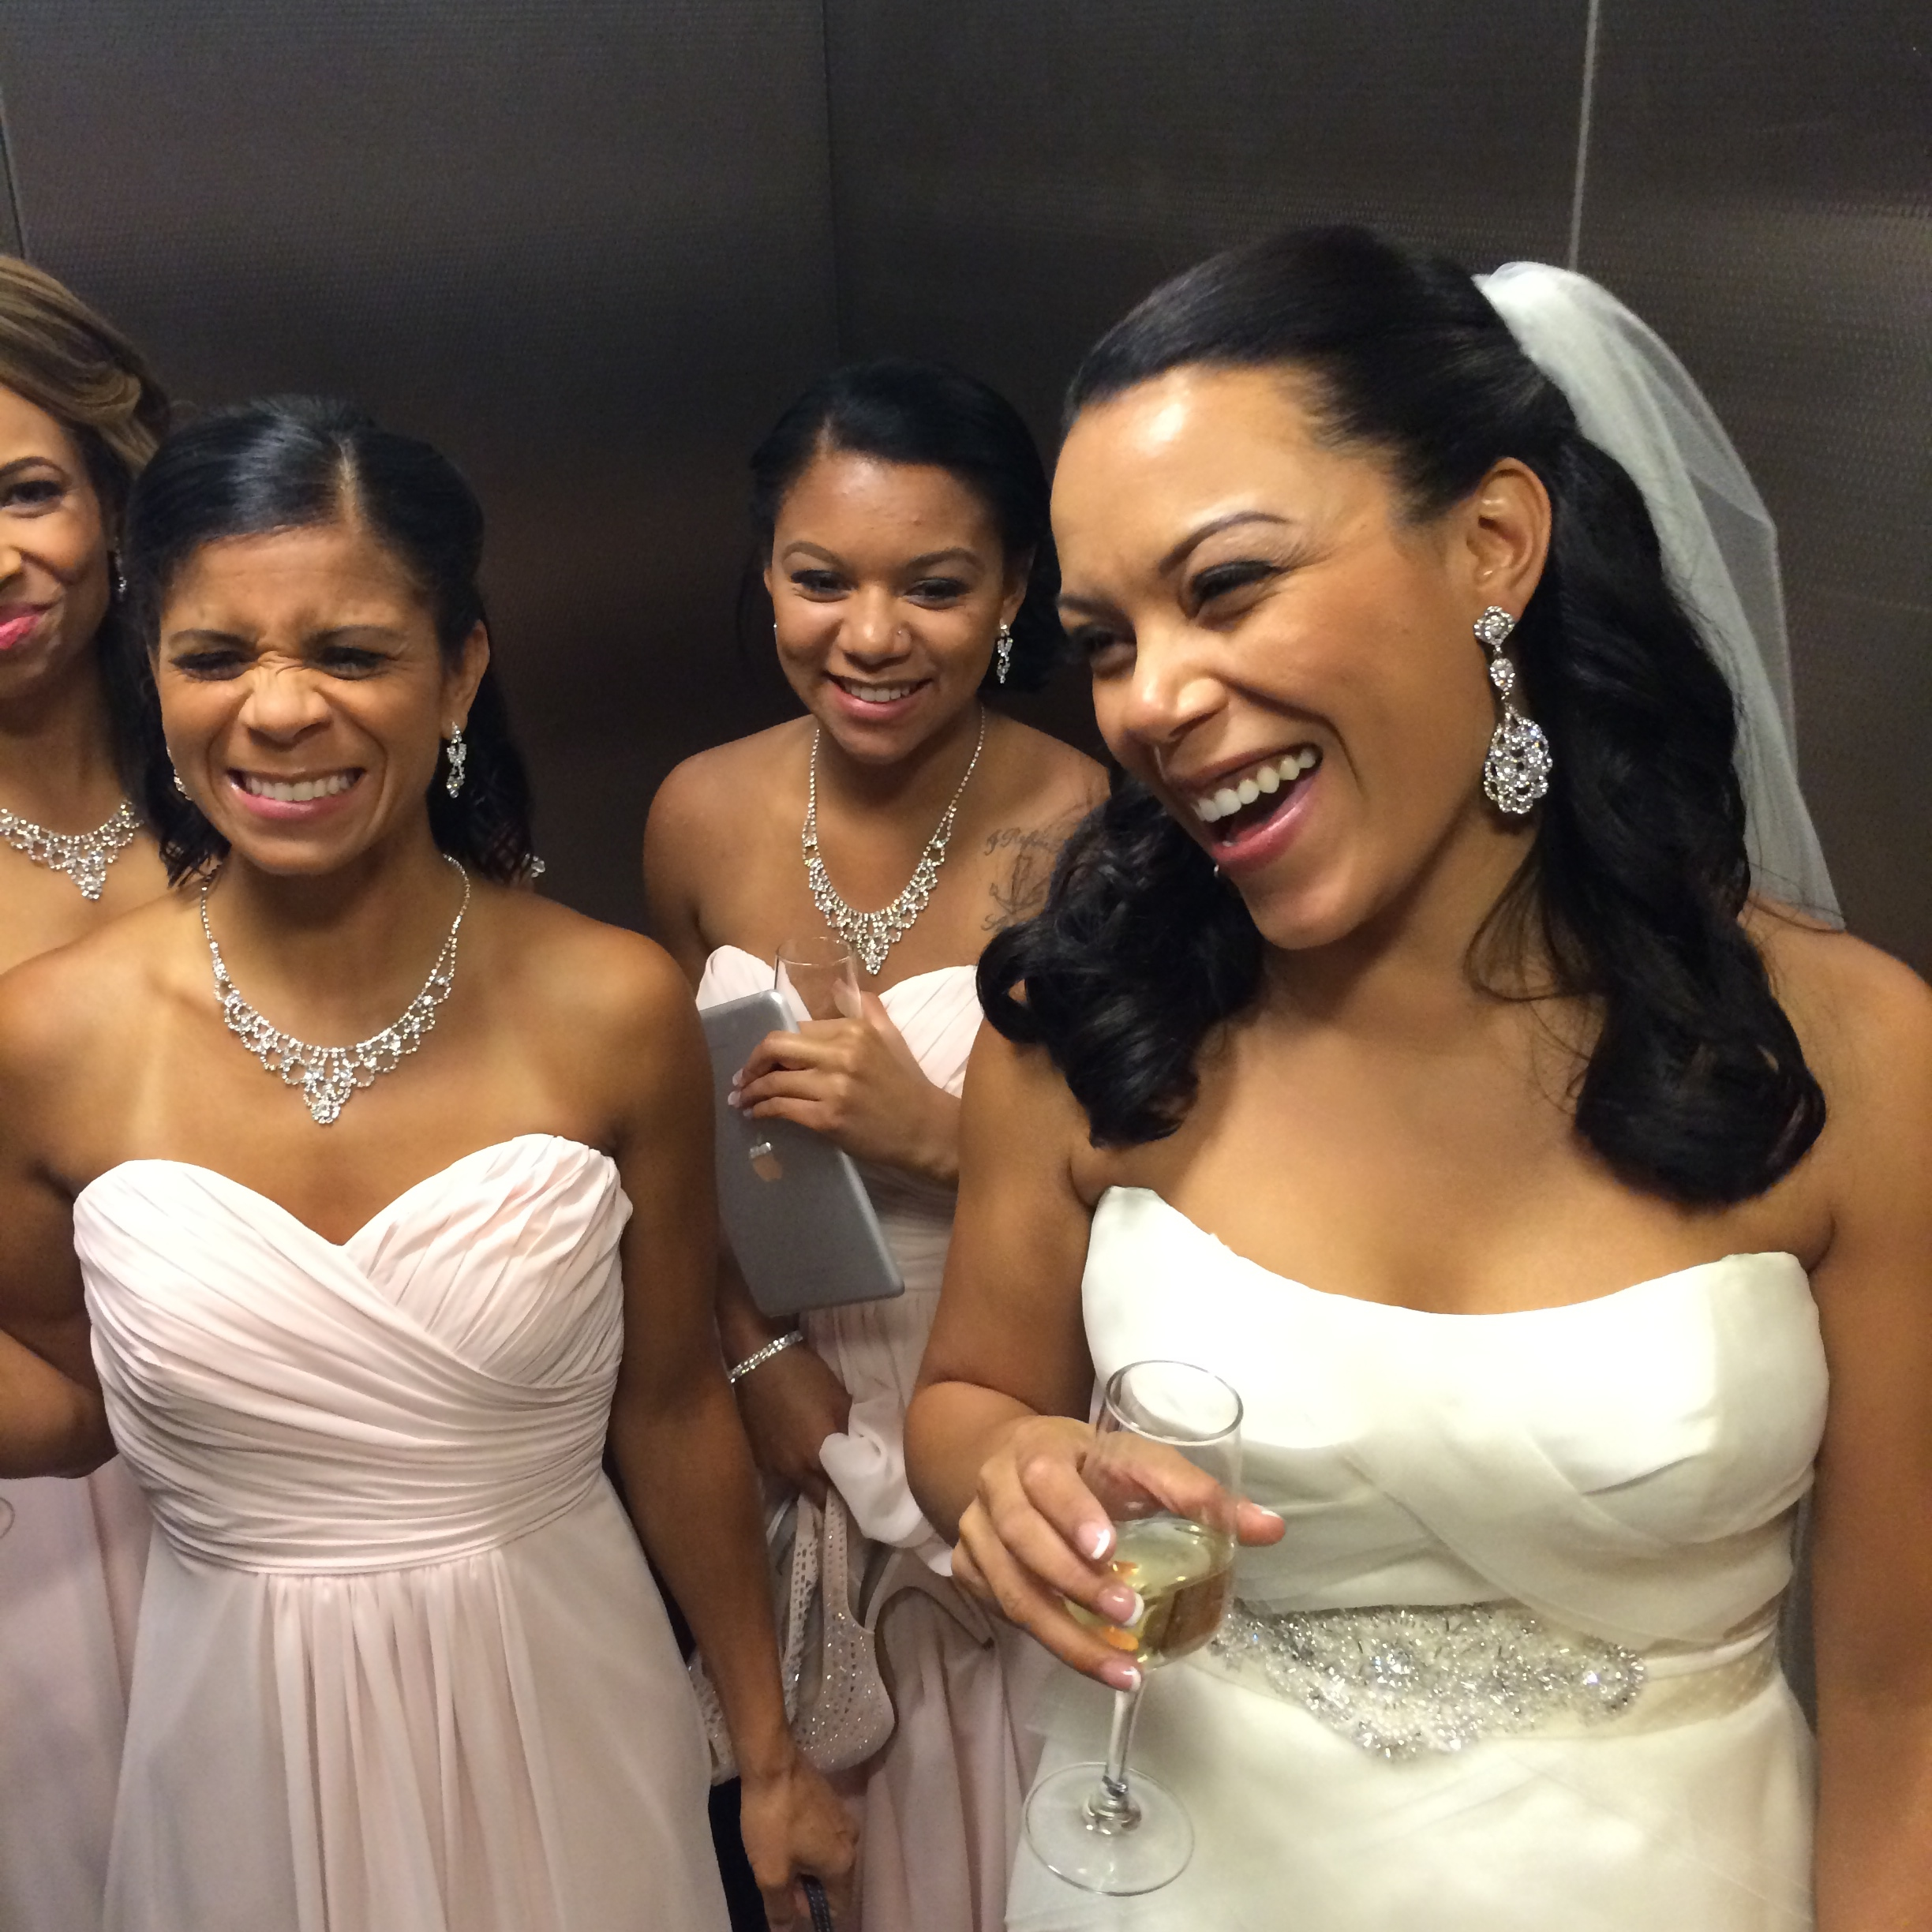 Halona & her bridesmaids laughed at the craziness surrounding the NBA Summer Series - avoiding the players and her guests by taking a service elevator down to meet her groom.